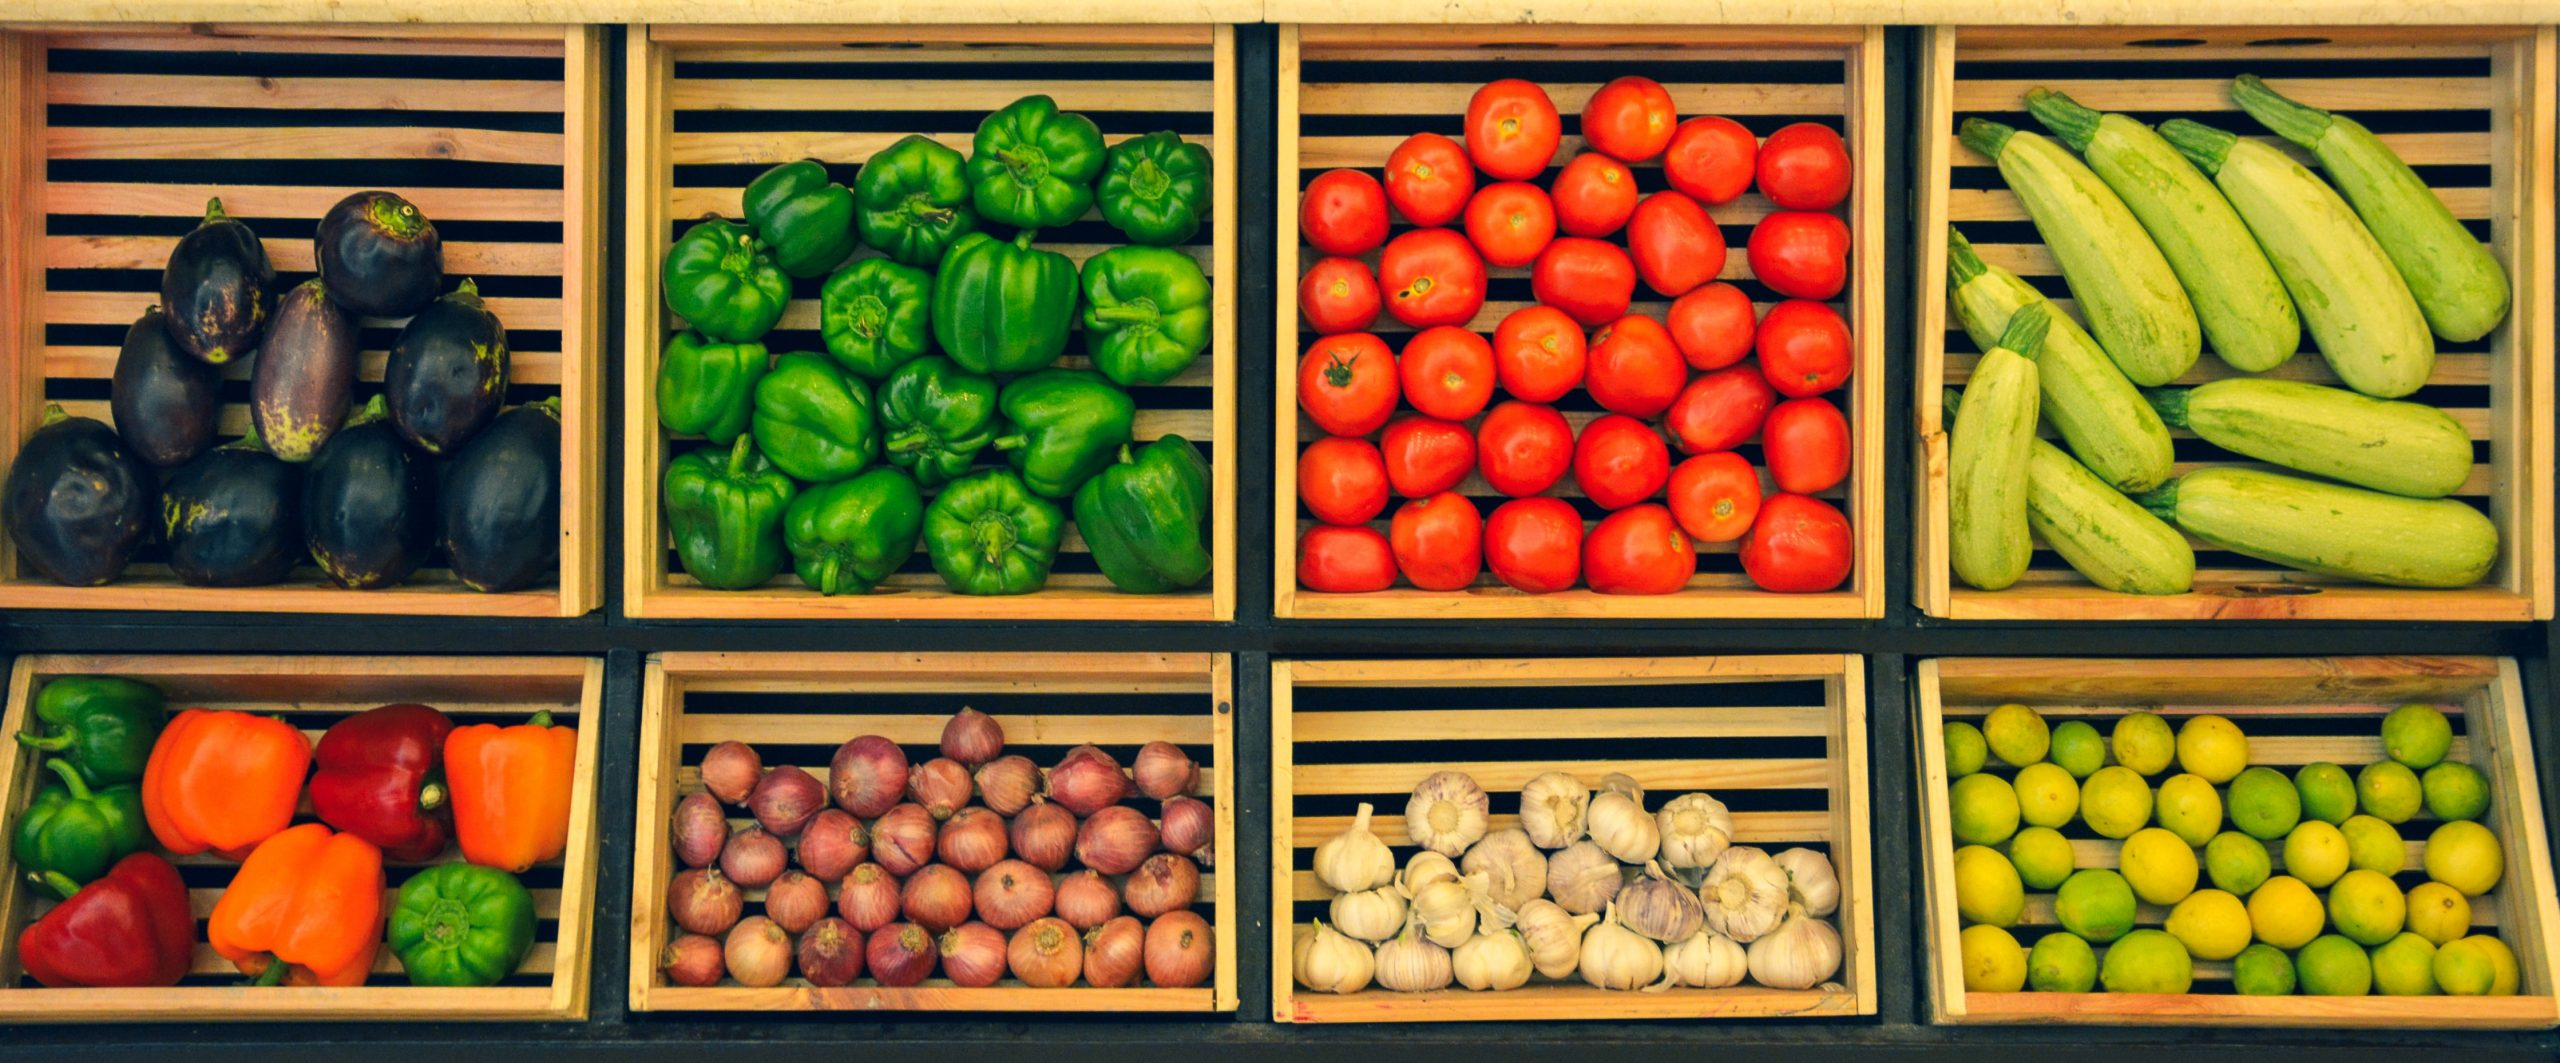 Fruits and Vegetables in Crates